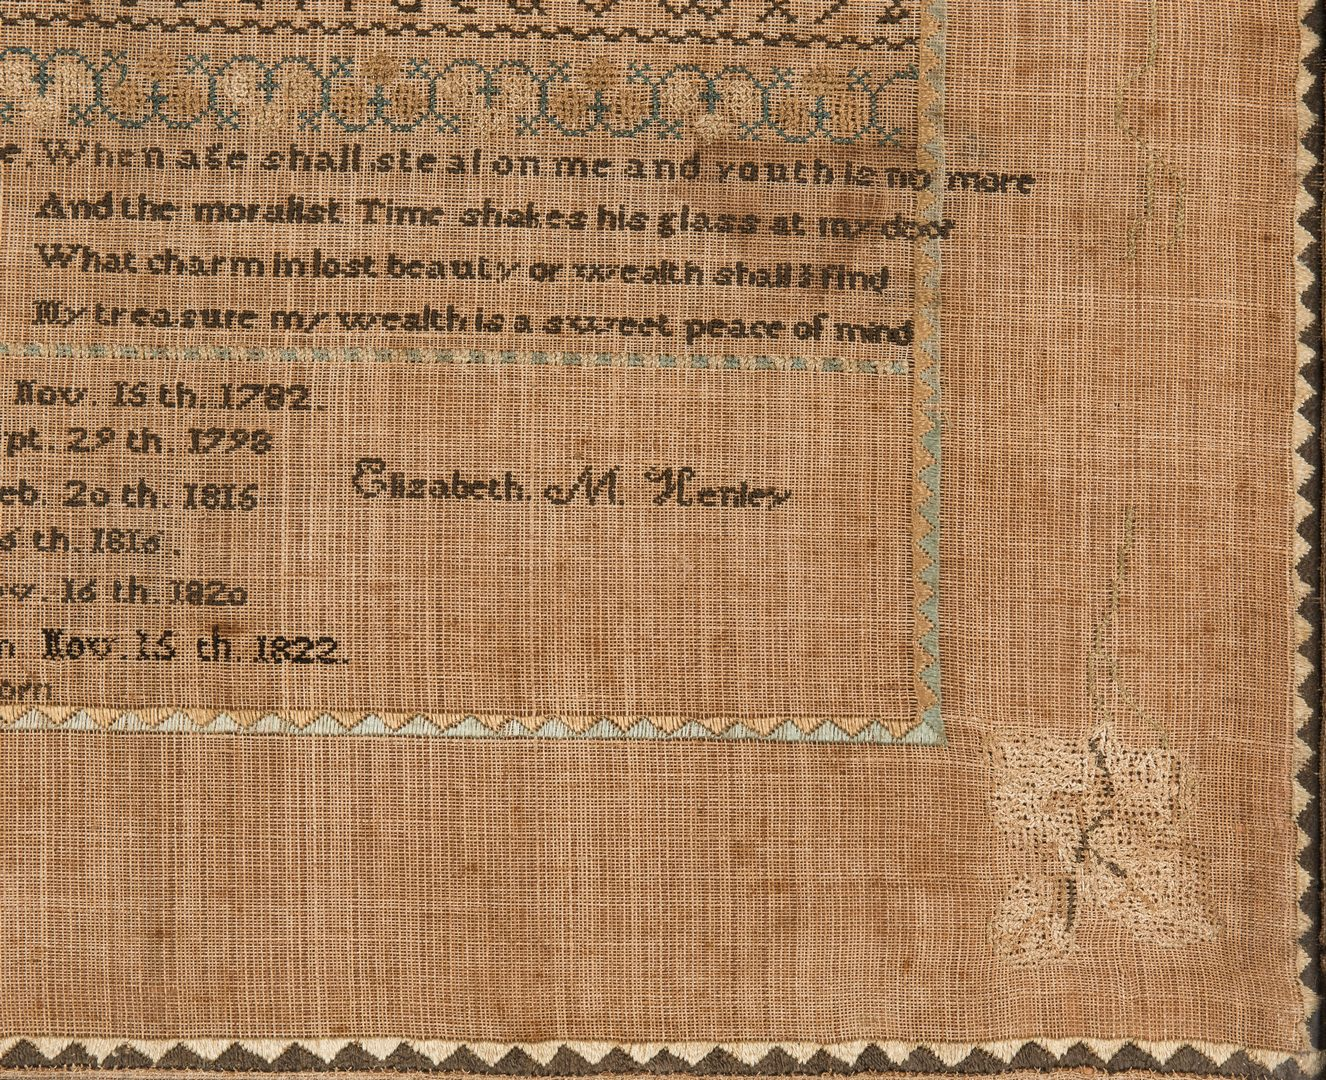 Lot 591: Tennessee Sampler, Henley Family, Knox County